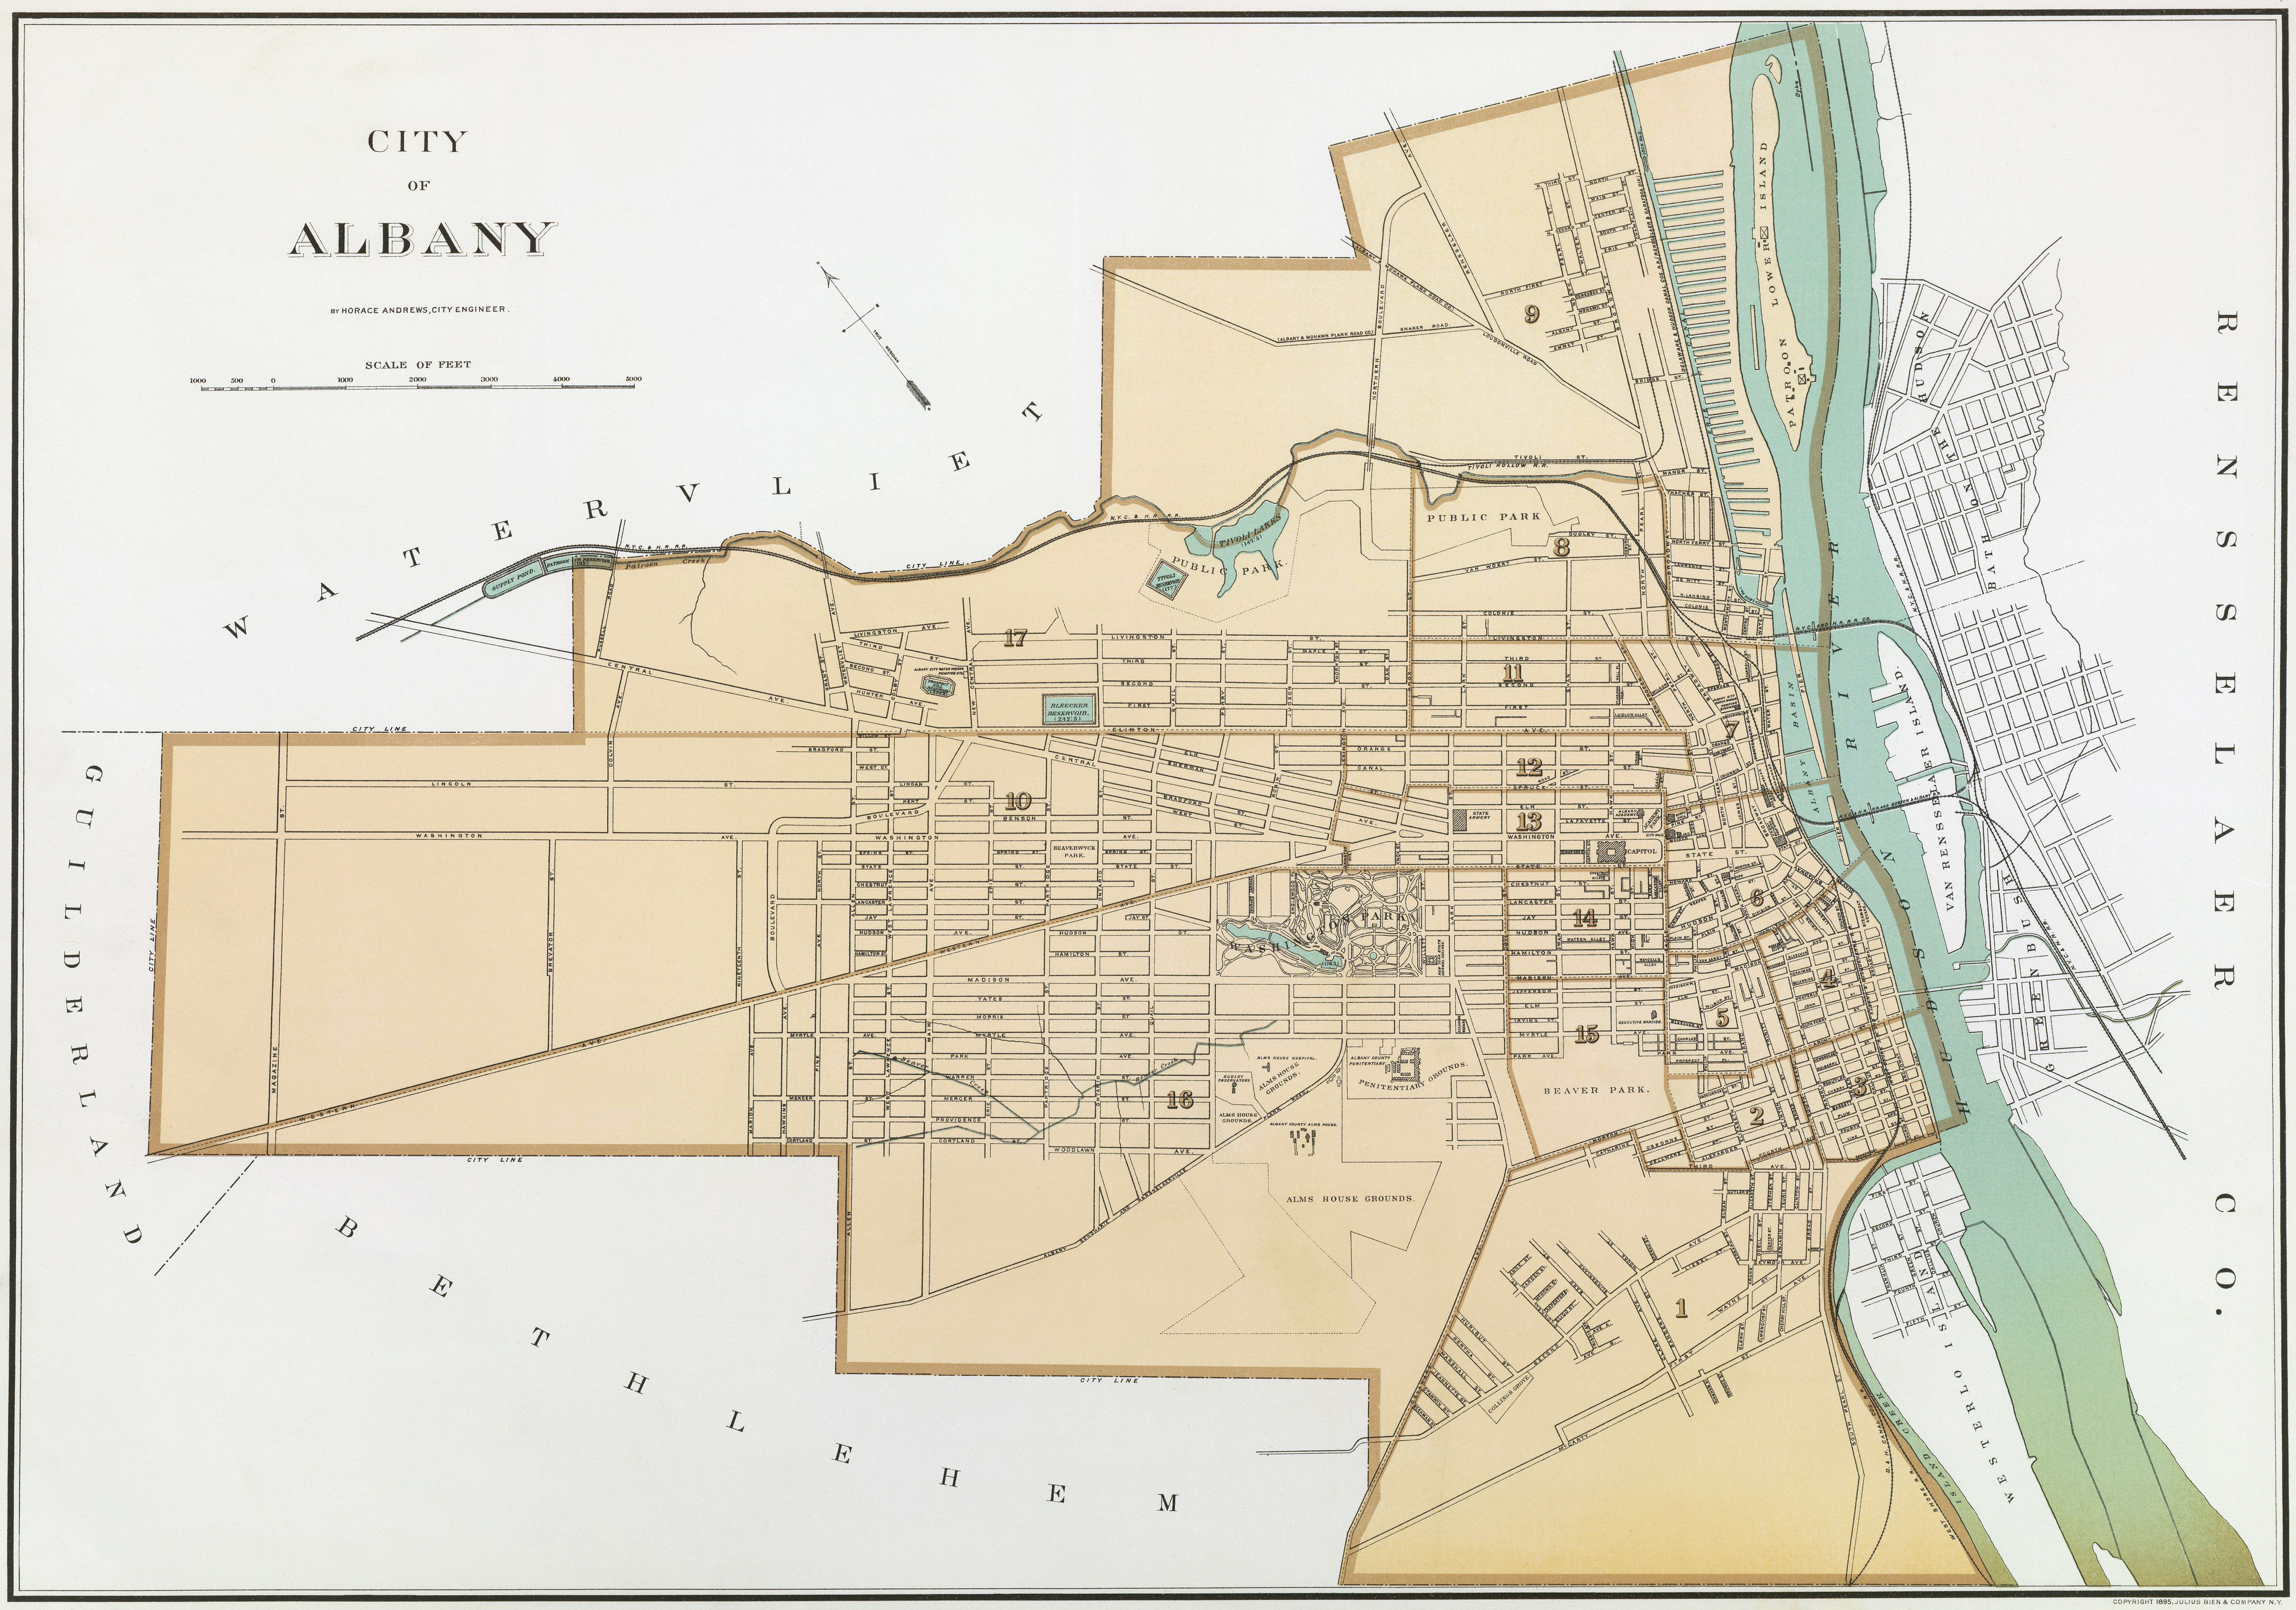 File:Albany New York 1895 Restored.jpg - Wikimedia Commons on map of crabtree, map of foxborough, map of hubbard, map of marylhurst university, map of south west western australia, map of glen echo, map of oregon, map of crandall, map of girard, map of spencerport, map of browns island, map of buffalo, map of brookings, map of new york state, map of crane, map of otto, map of dormansville, map of woodbourne, map of new york city, map of georgia,